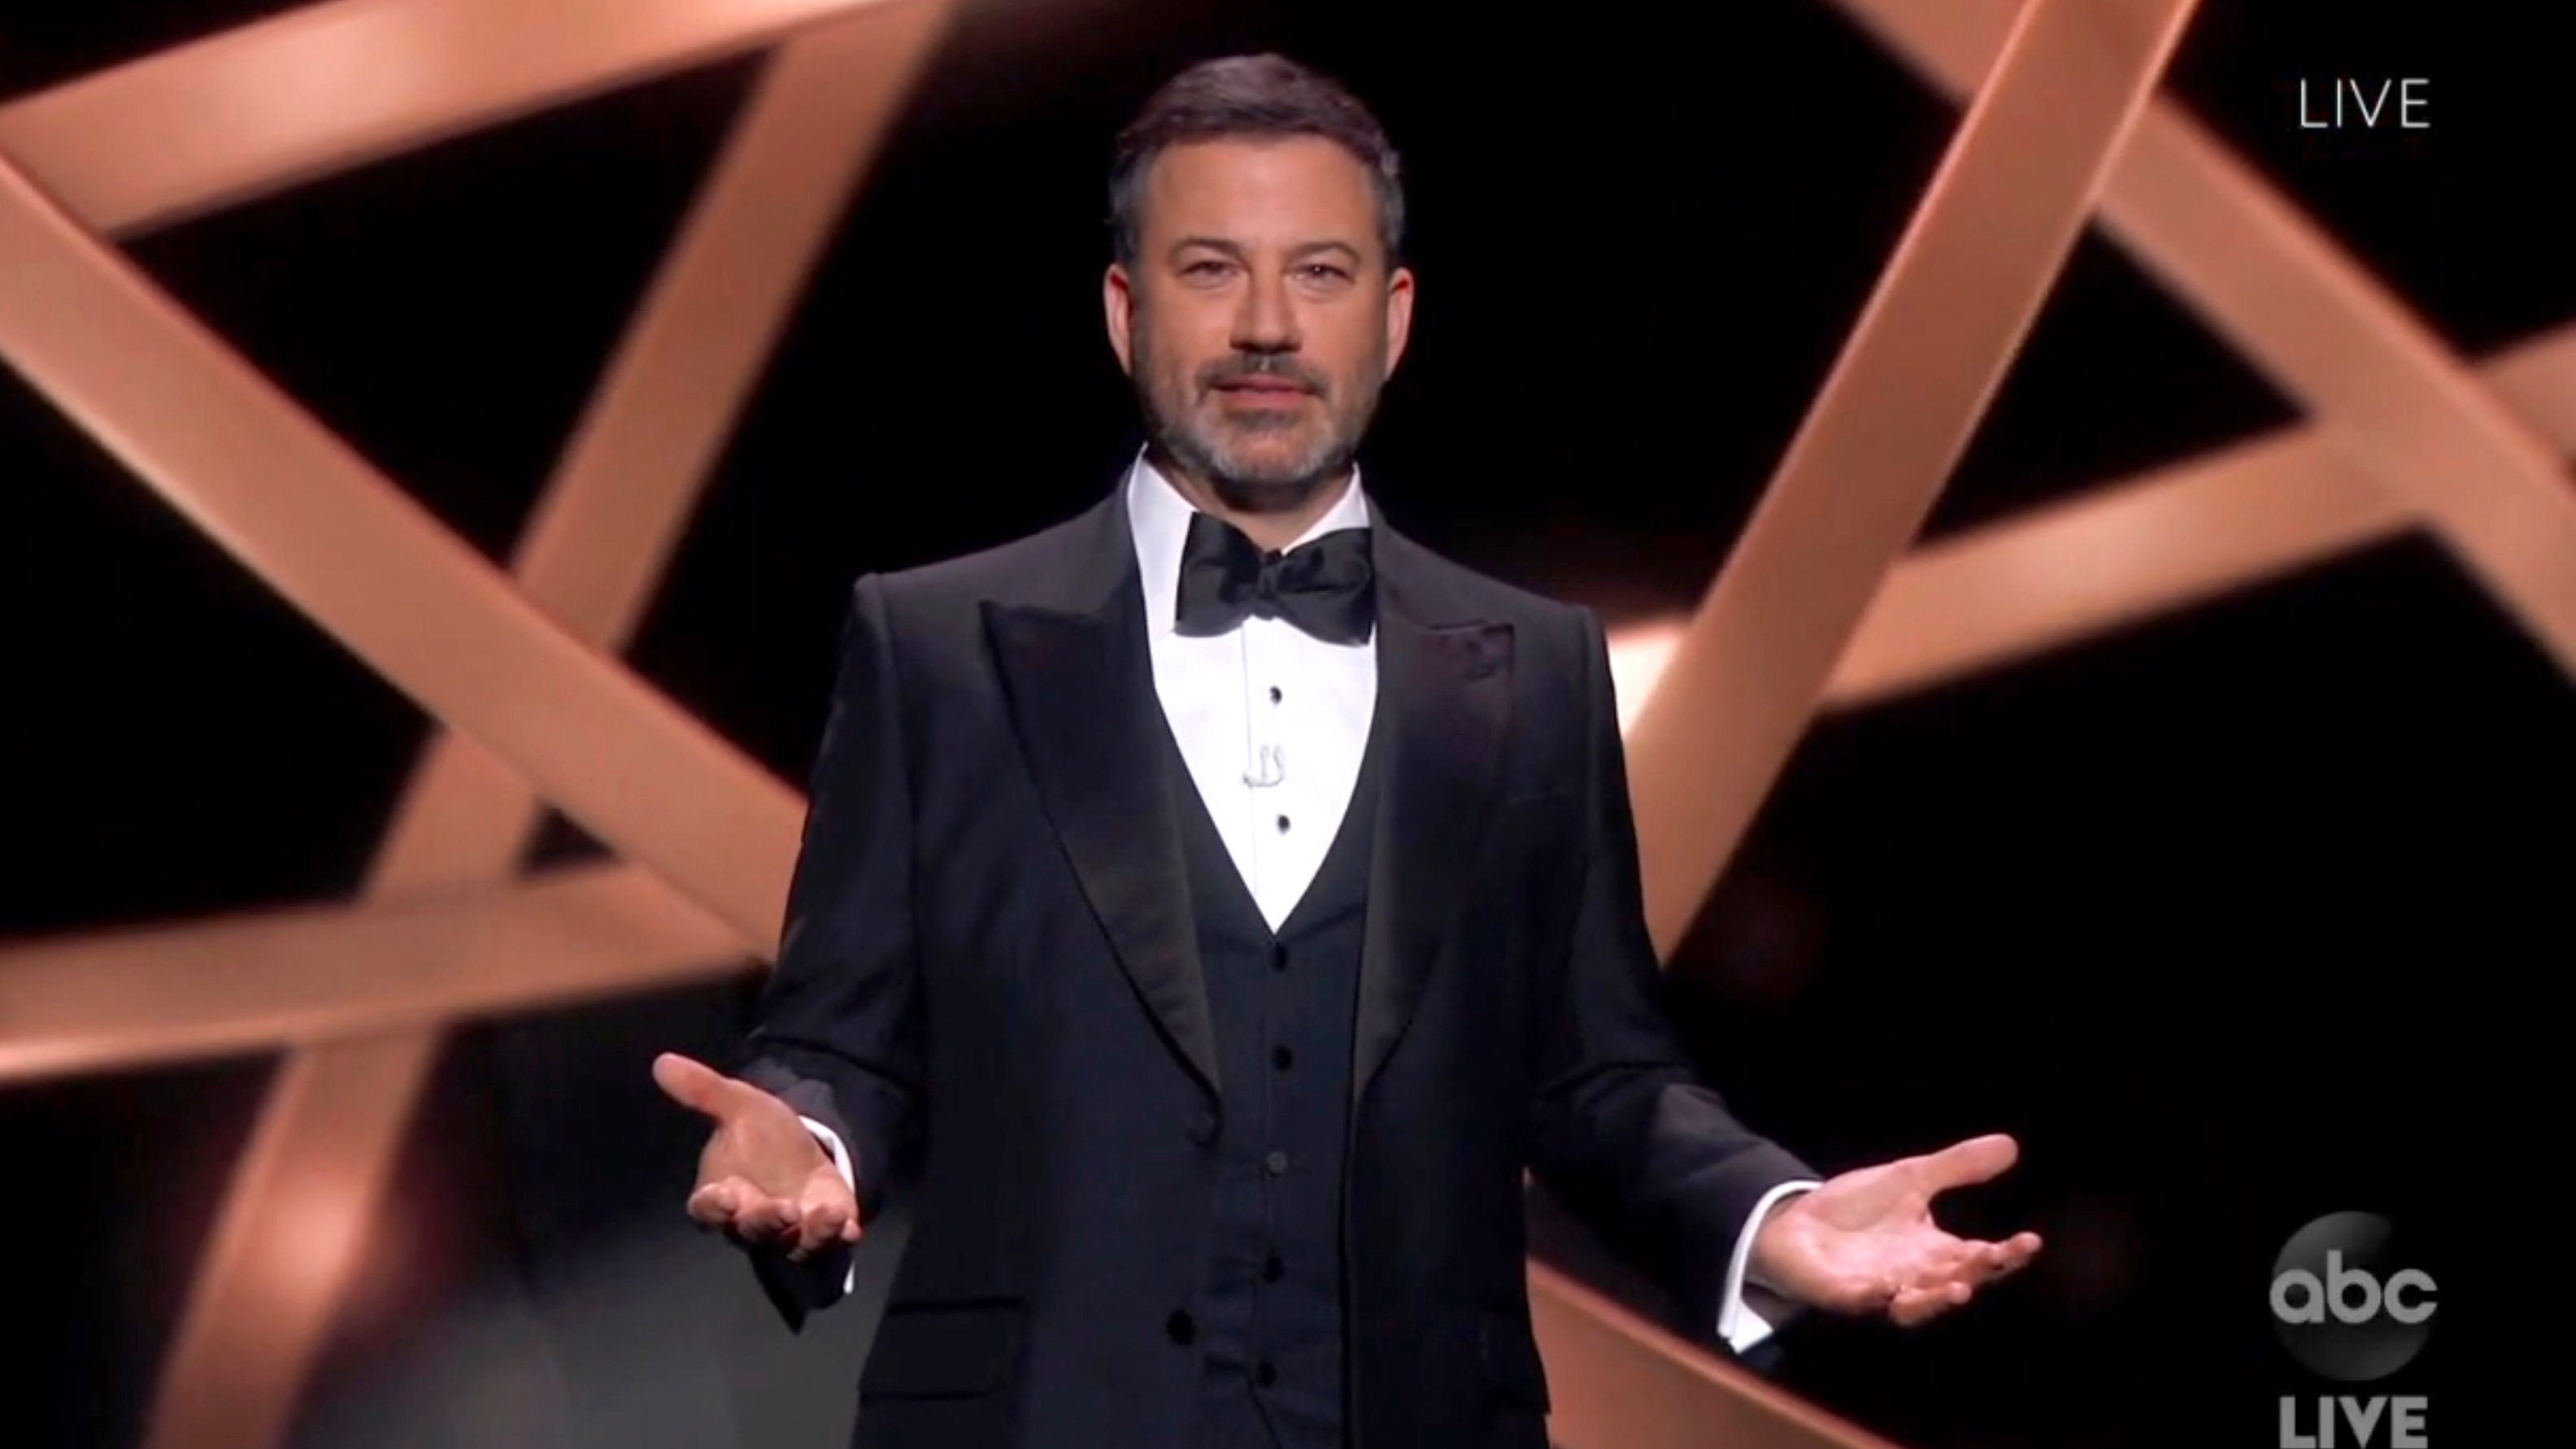 Emmys: Why Jimmy Kimmel and Anthony Anderson's Black Lives Matter moment wasn't enough